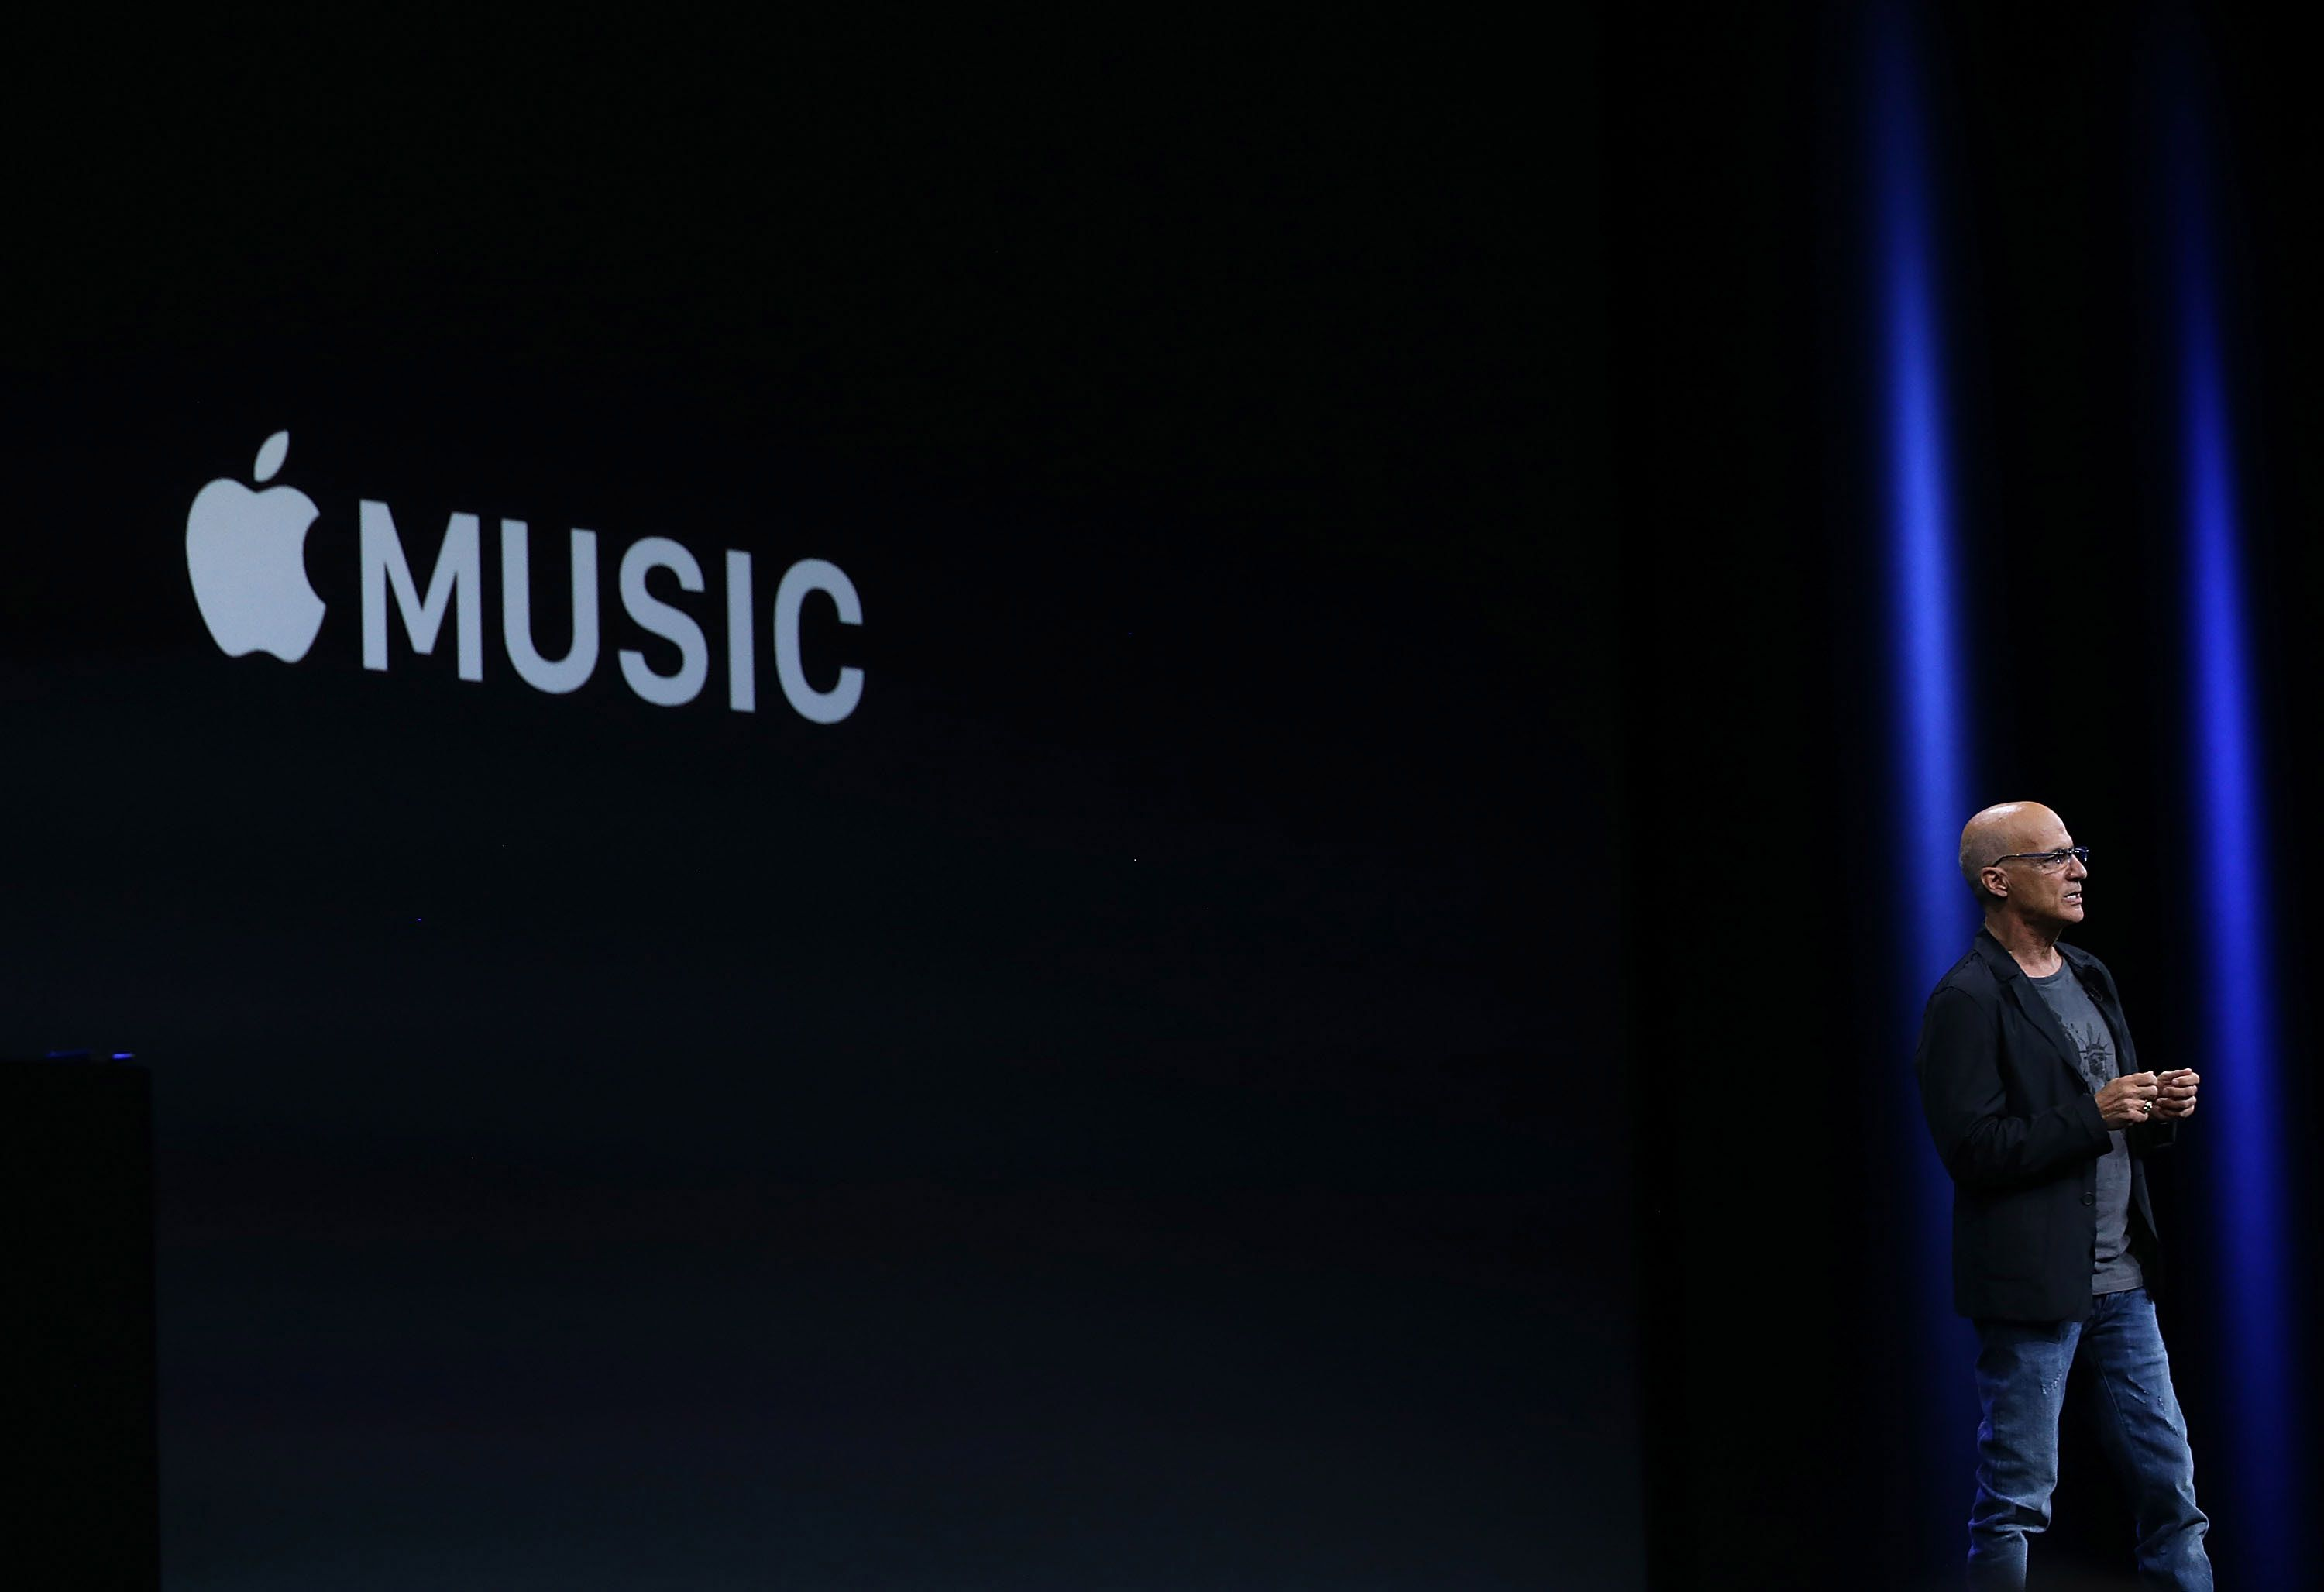 Jimmy Iovine announces Apple Music during Apple's WWDC on June 8, 2015, in San Francisco, Calif.